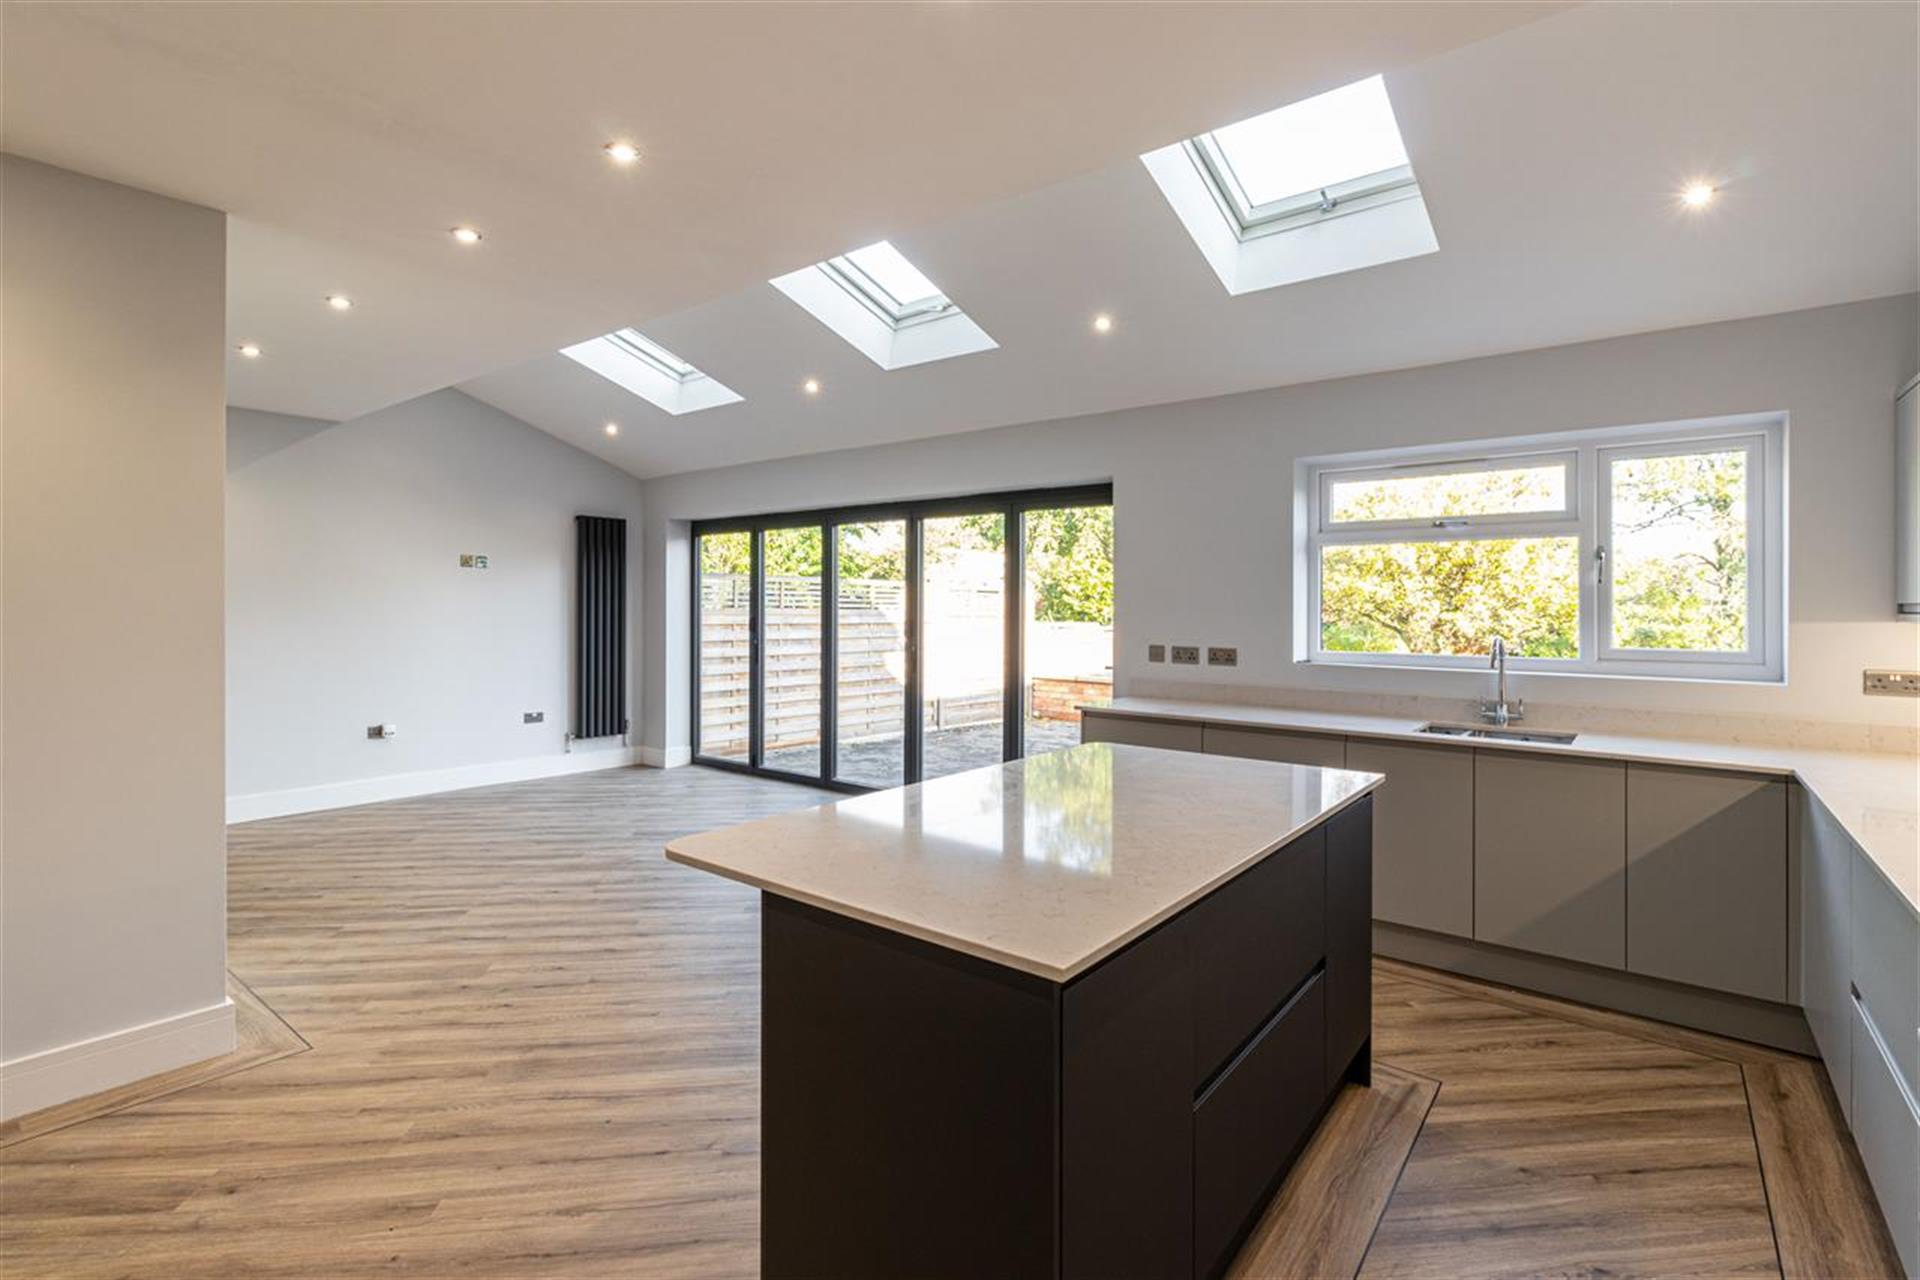 6 Bedroom Detached House For Sale - Open Plan Kitchen Family Room